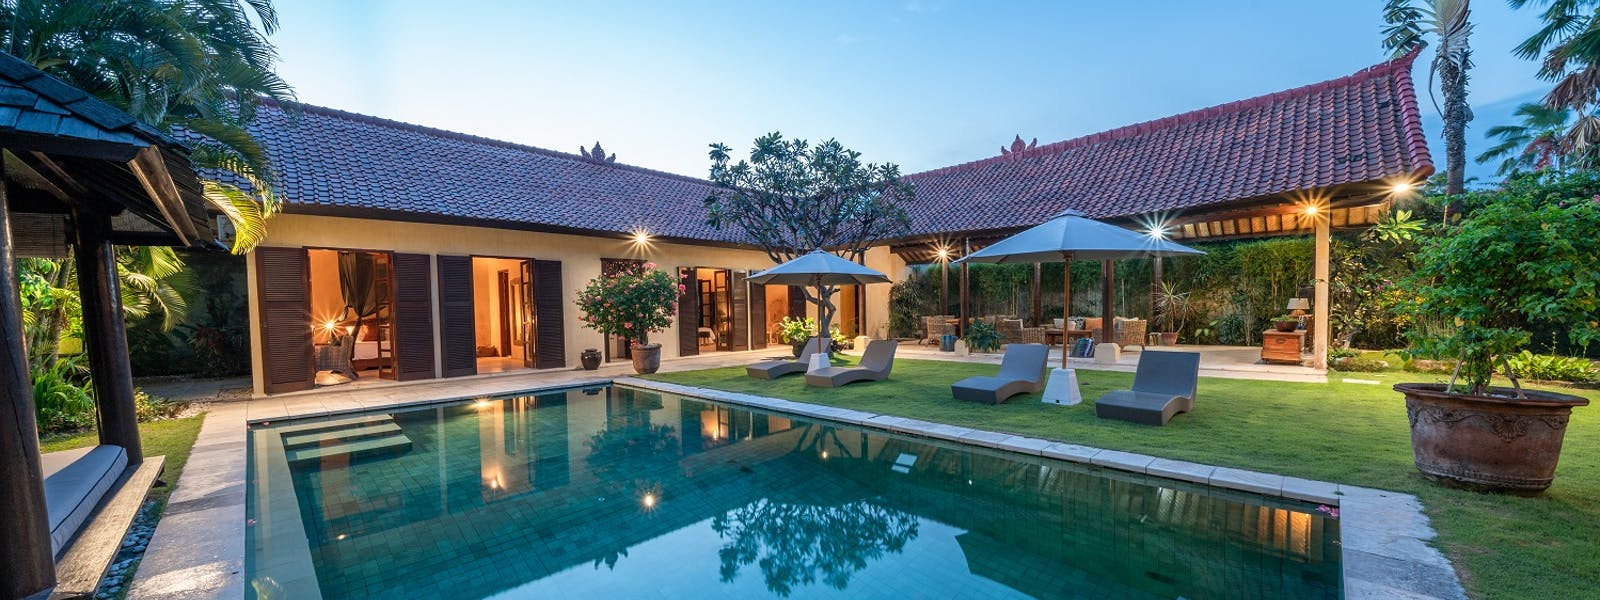 Swimming Pool Villa Rumi Bali